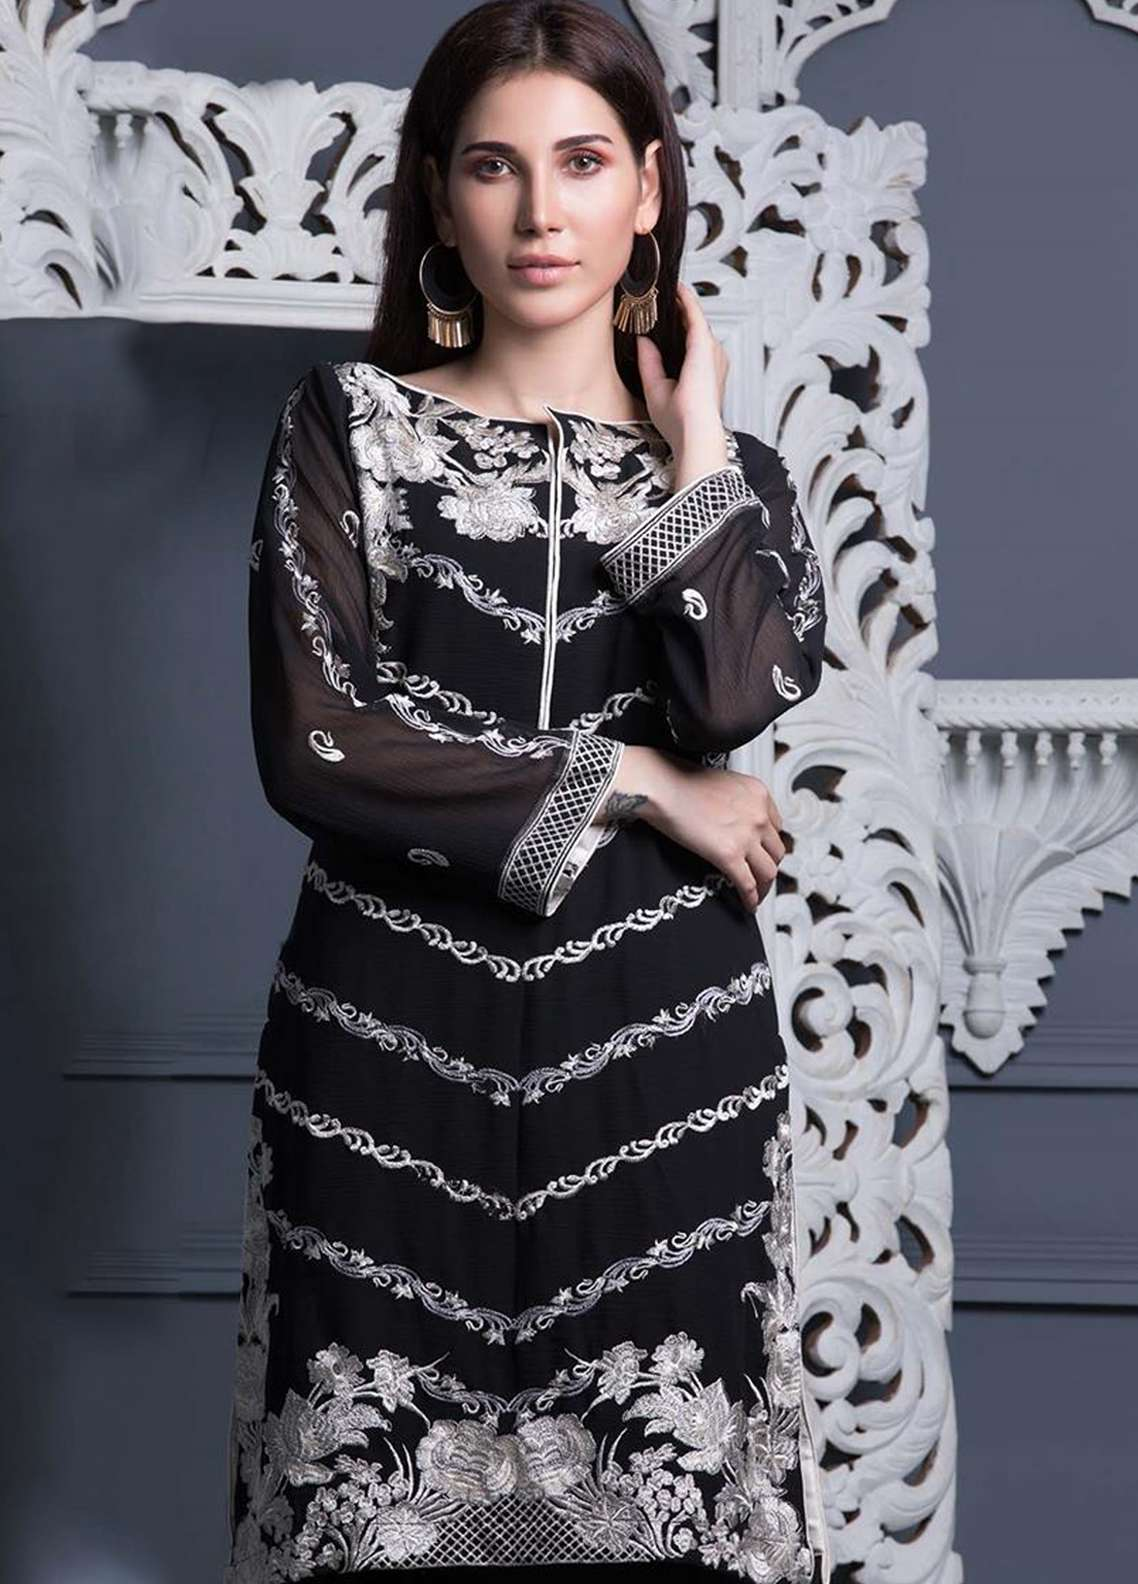 Areeba Saleem Embroidered Chiffon Unstitched Kurties AS18L 06 - Black & White Collection